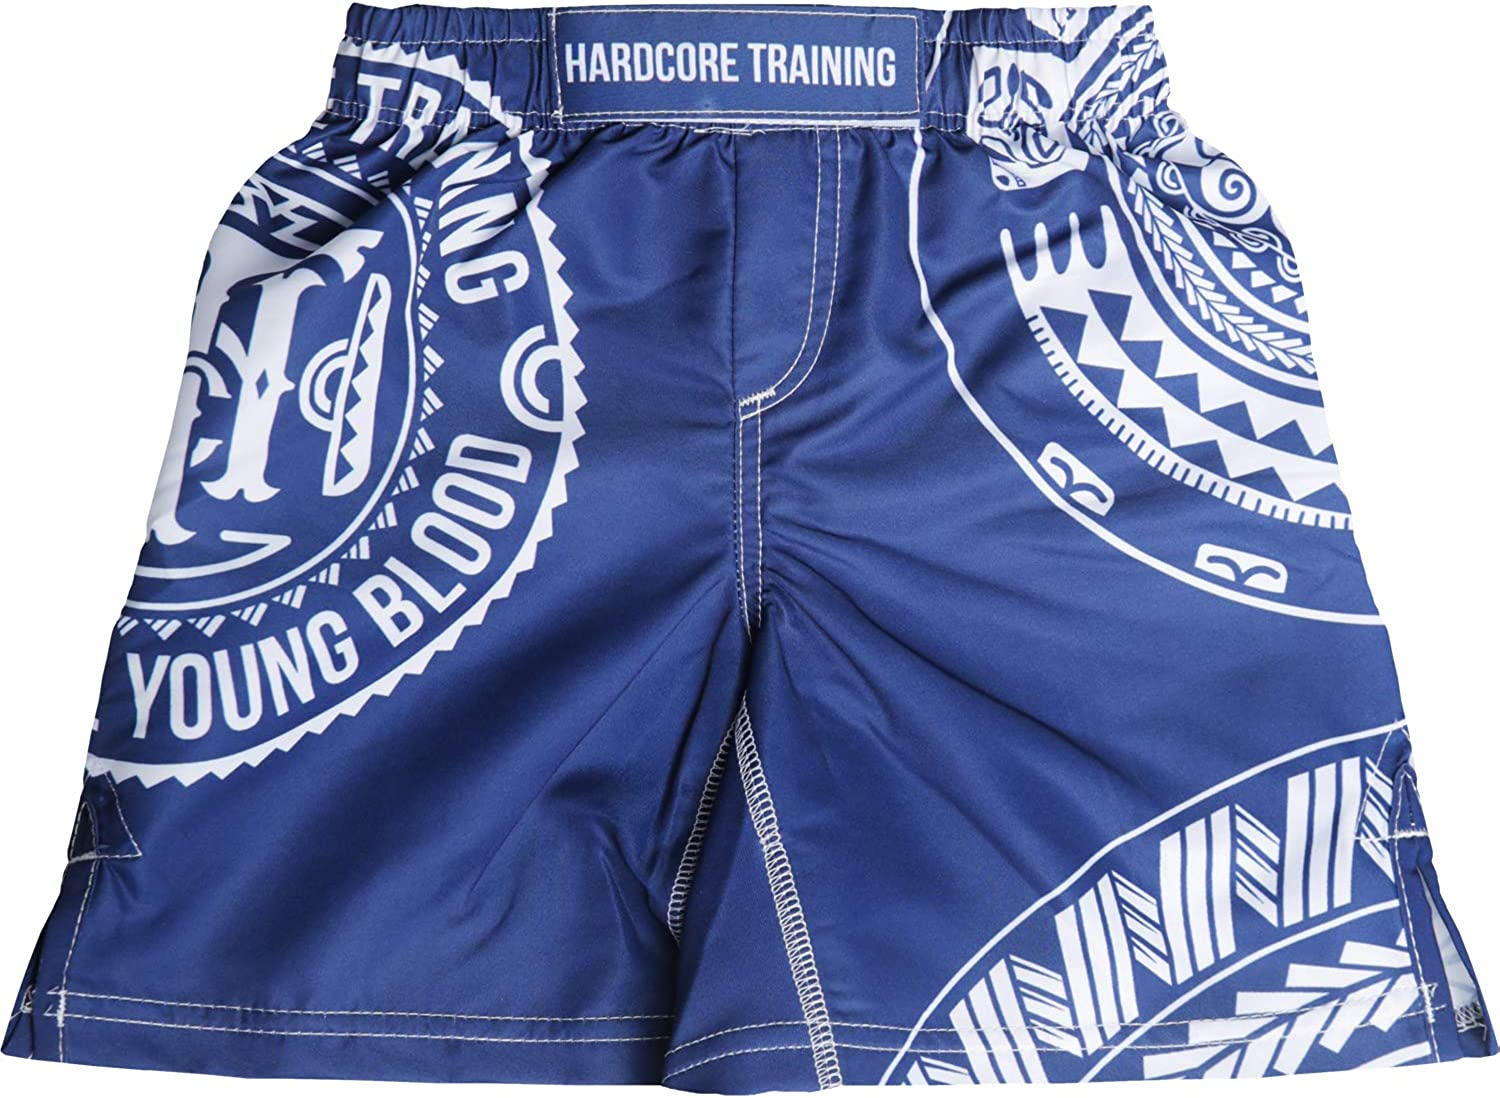 Hardcore Training Kids Boxing Shorts Ta Moko Blue Youth MMA BJJ Fitness Running Workout Exercise Sport Clothing